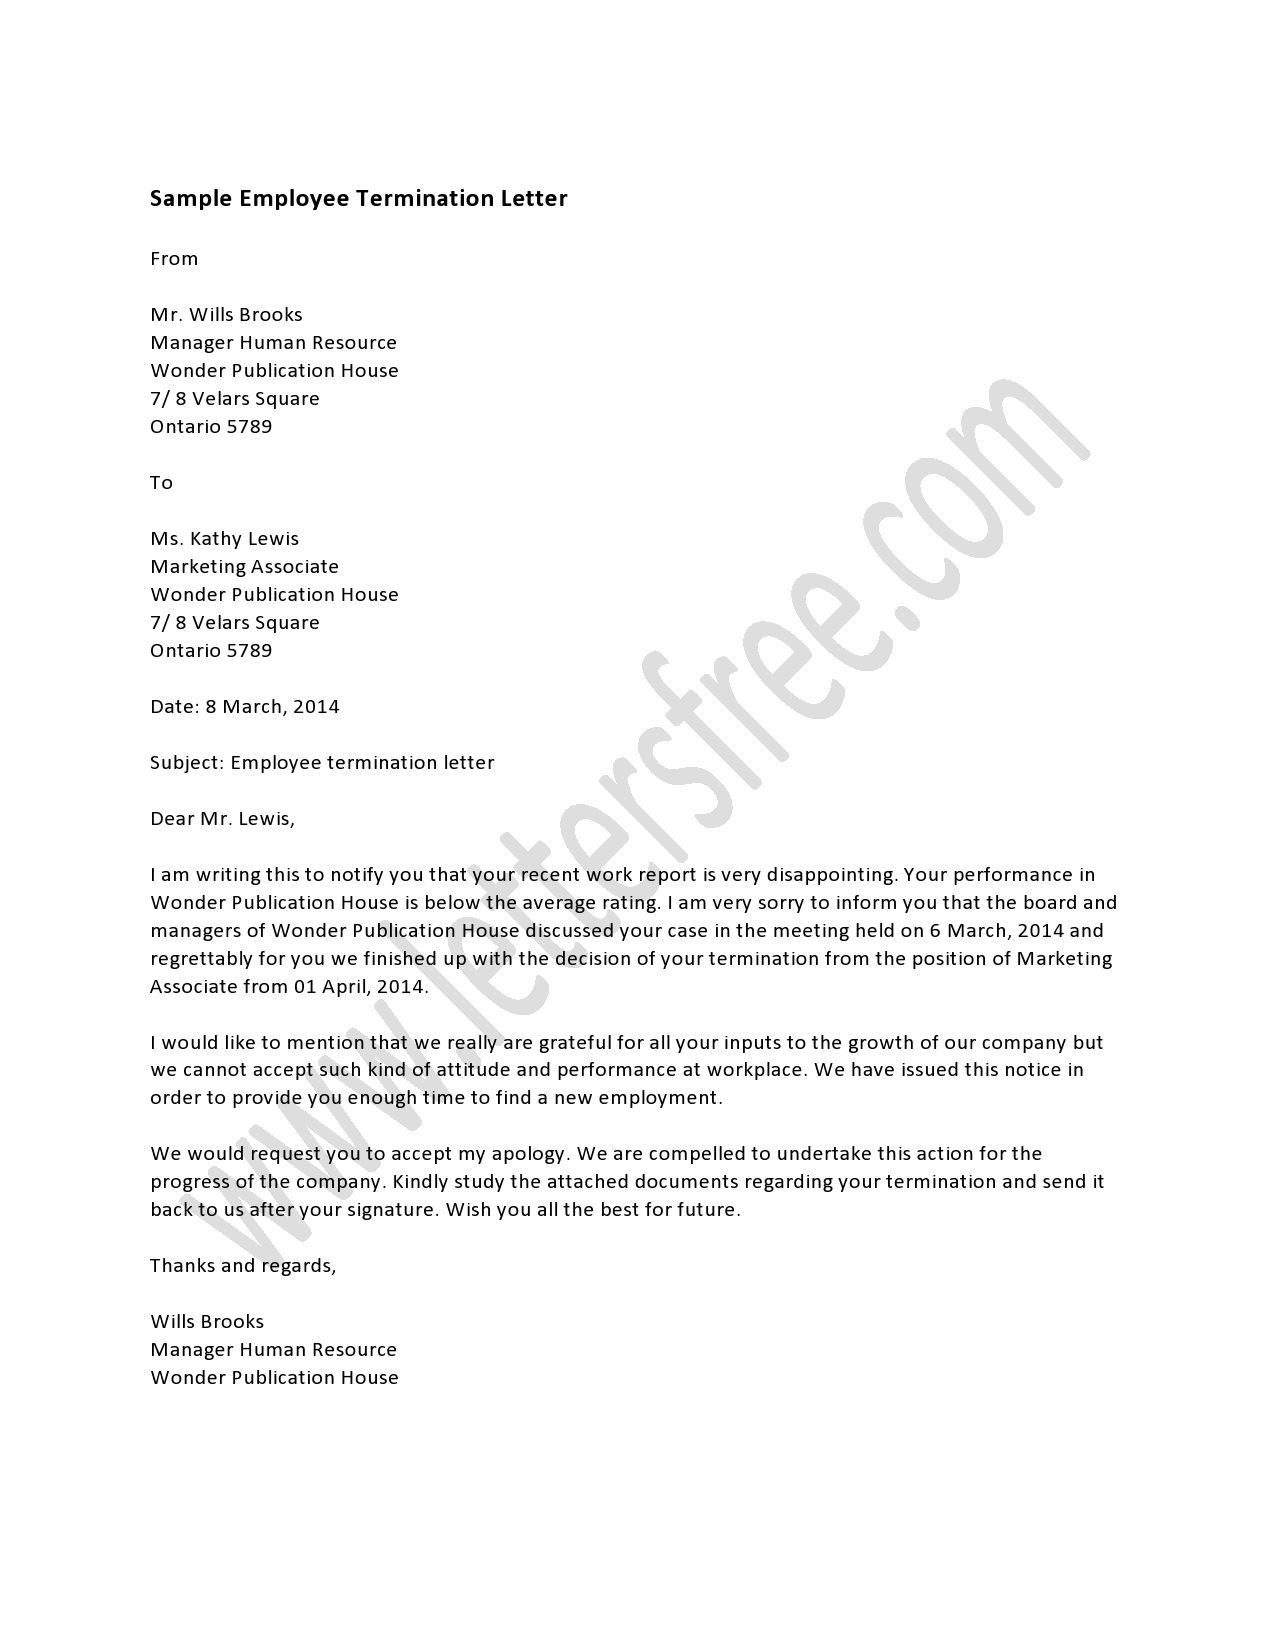 Employee Termination Letter Is A Template Used By Companies To Outline The  Terms Of An Employeeu0027s  How To Write A Termination Letter To An Employee